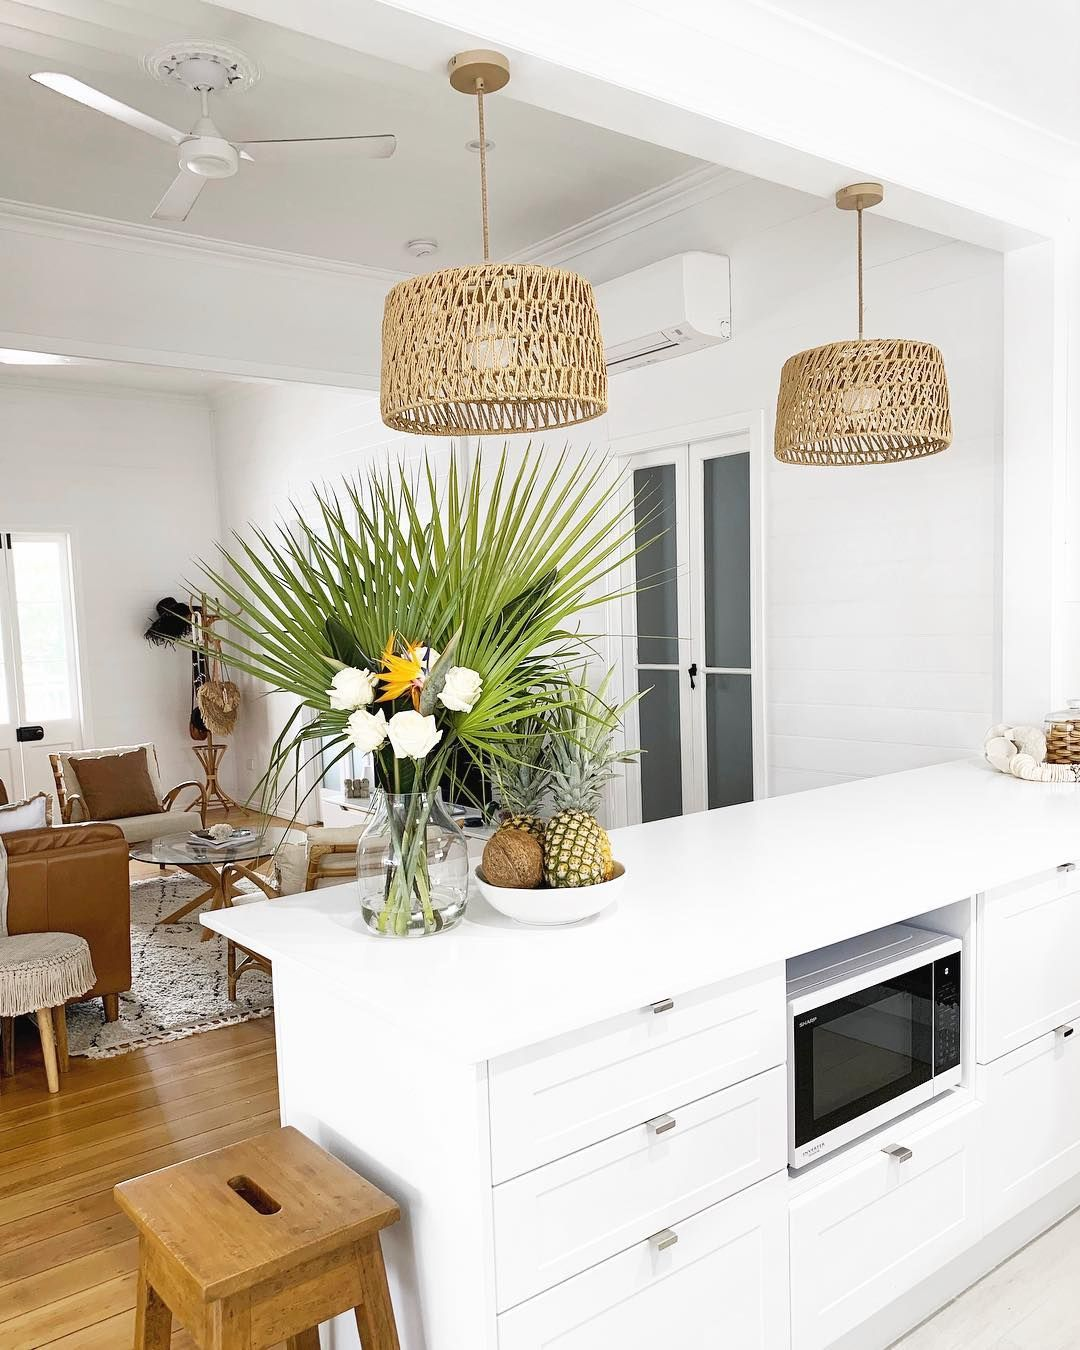 clean white kitchen for now kitchen whitekitchen kitchenreno kitc boho on boho chic interior design kitchen id=62109